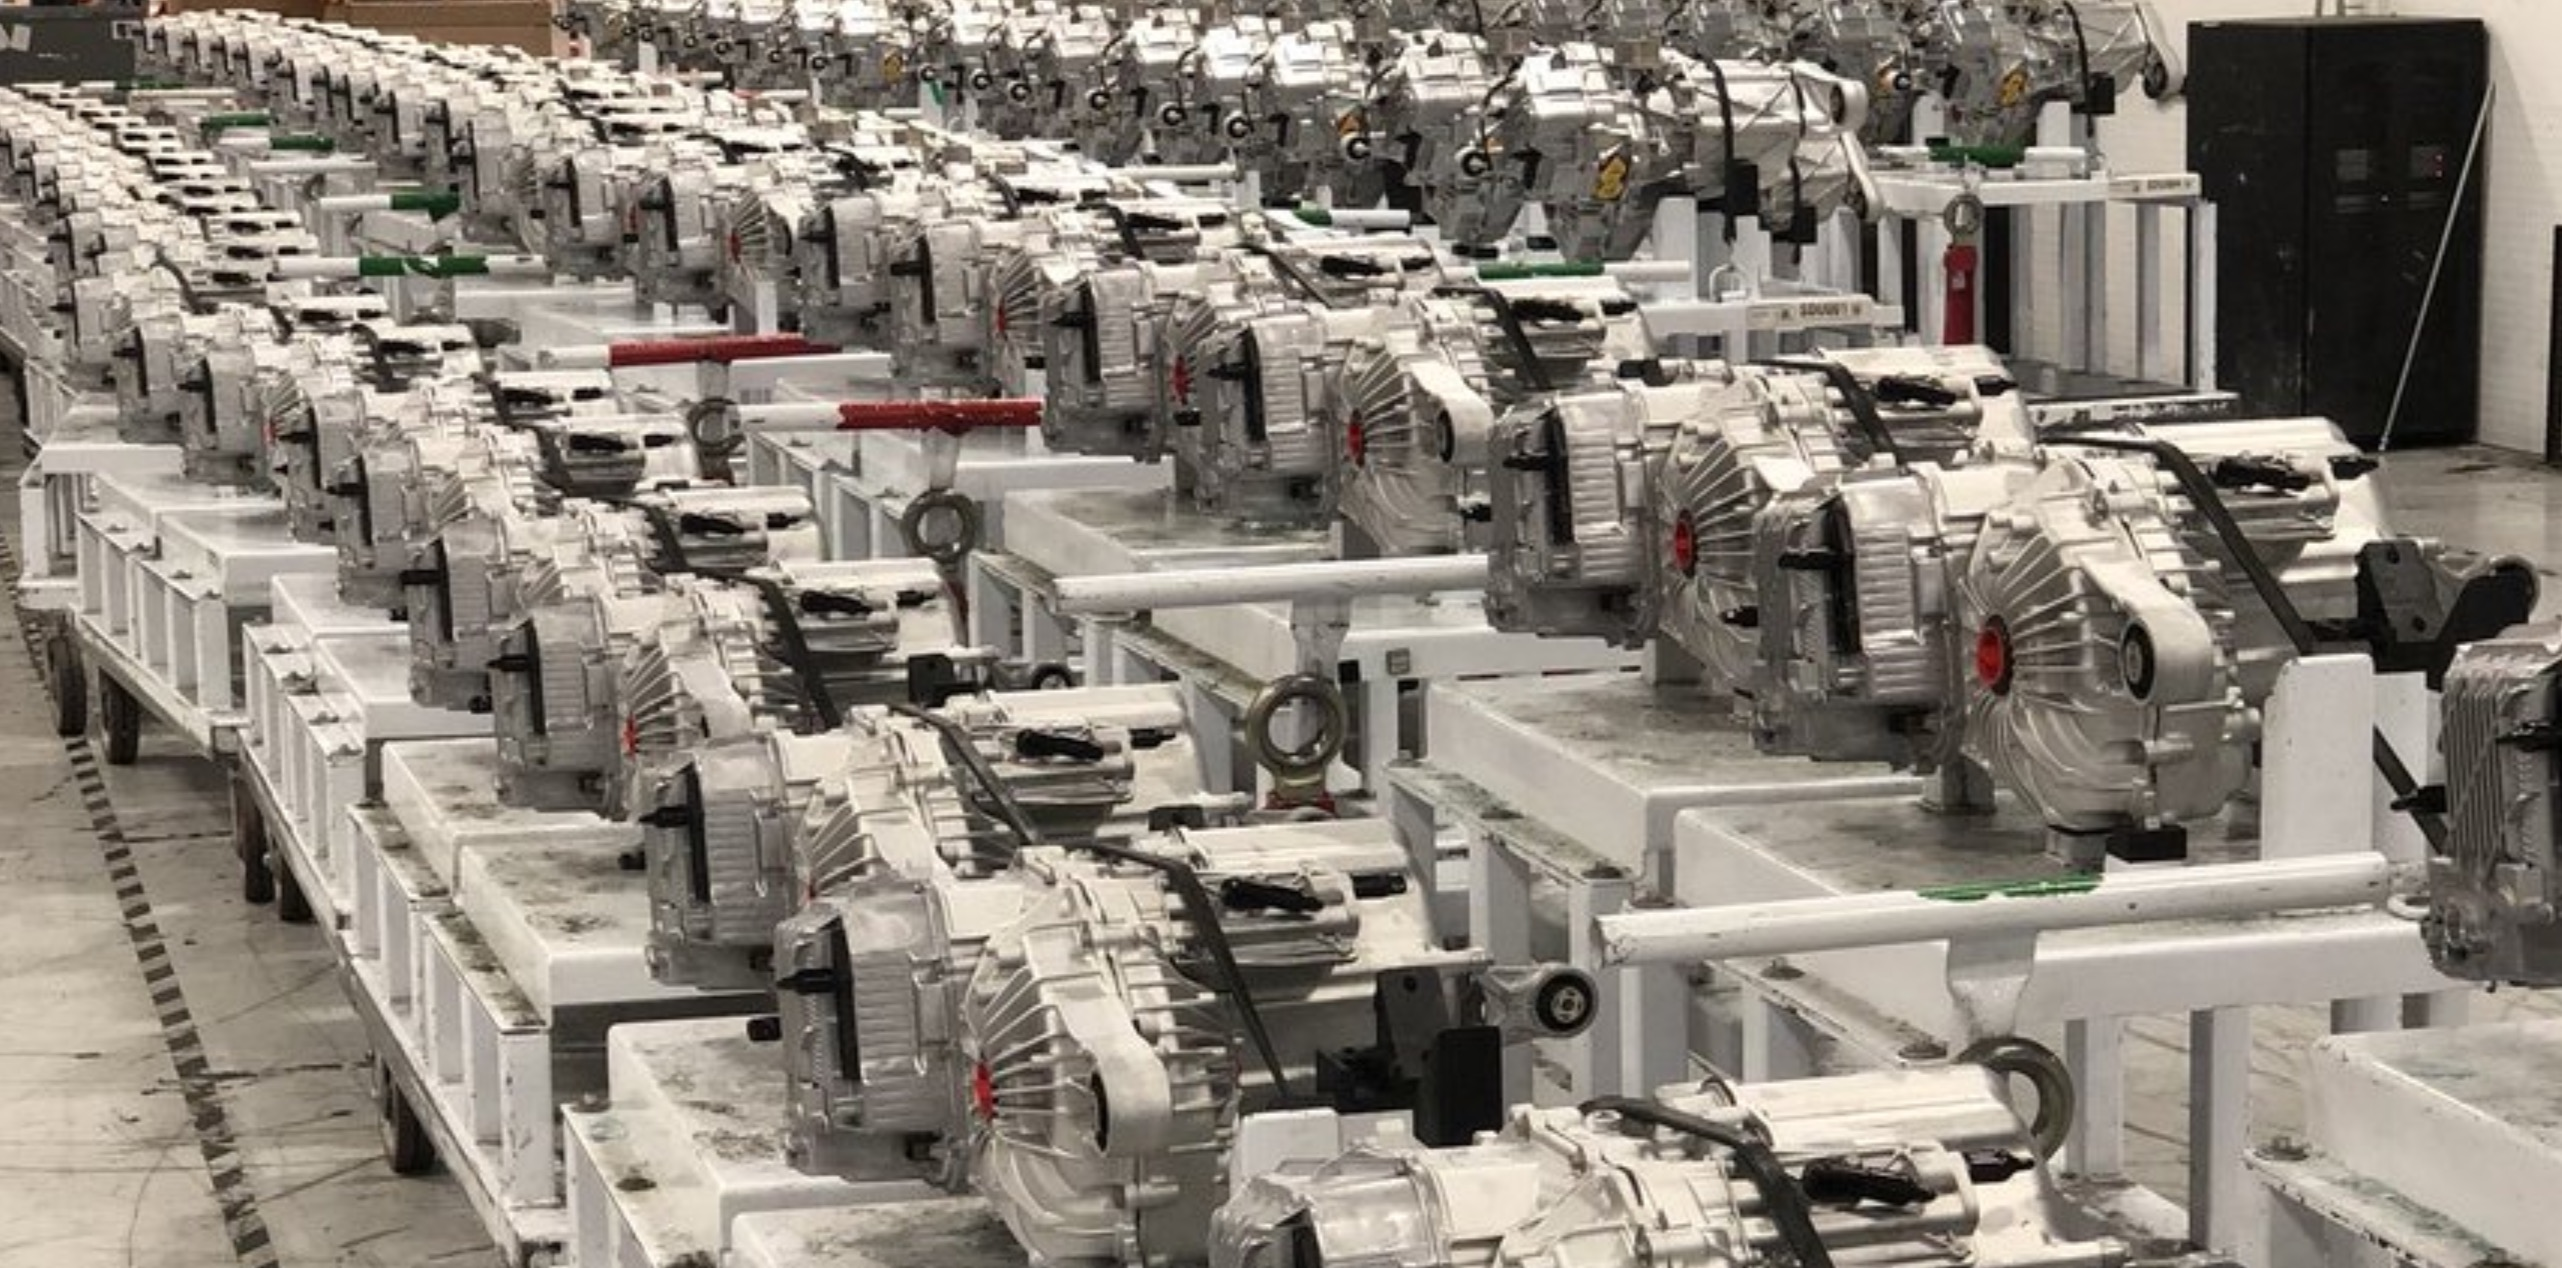 Elon Musk shares rare images of Model 3 production in factory as Tesla makes end-of-quarter push